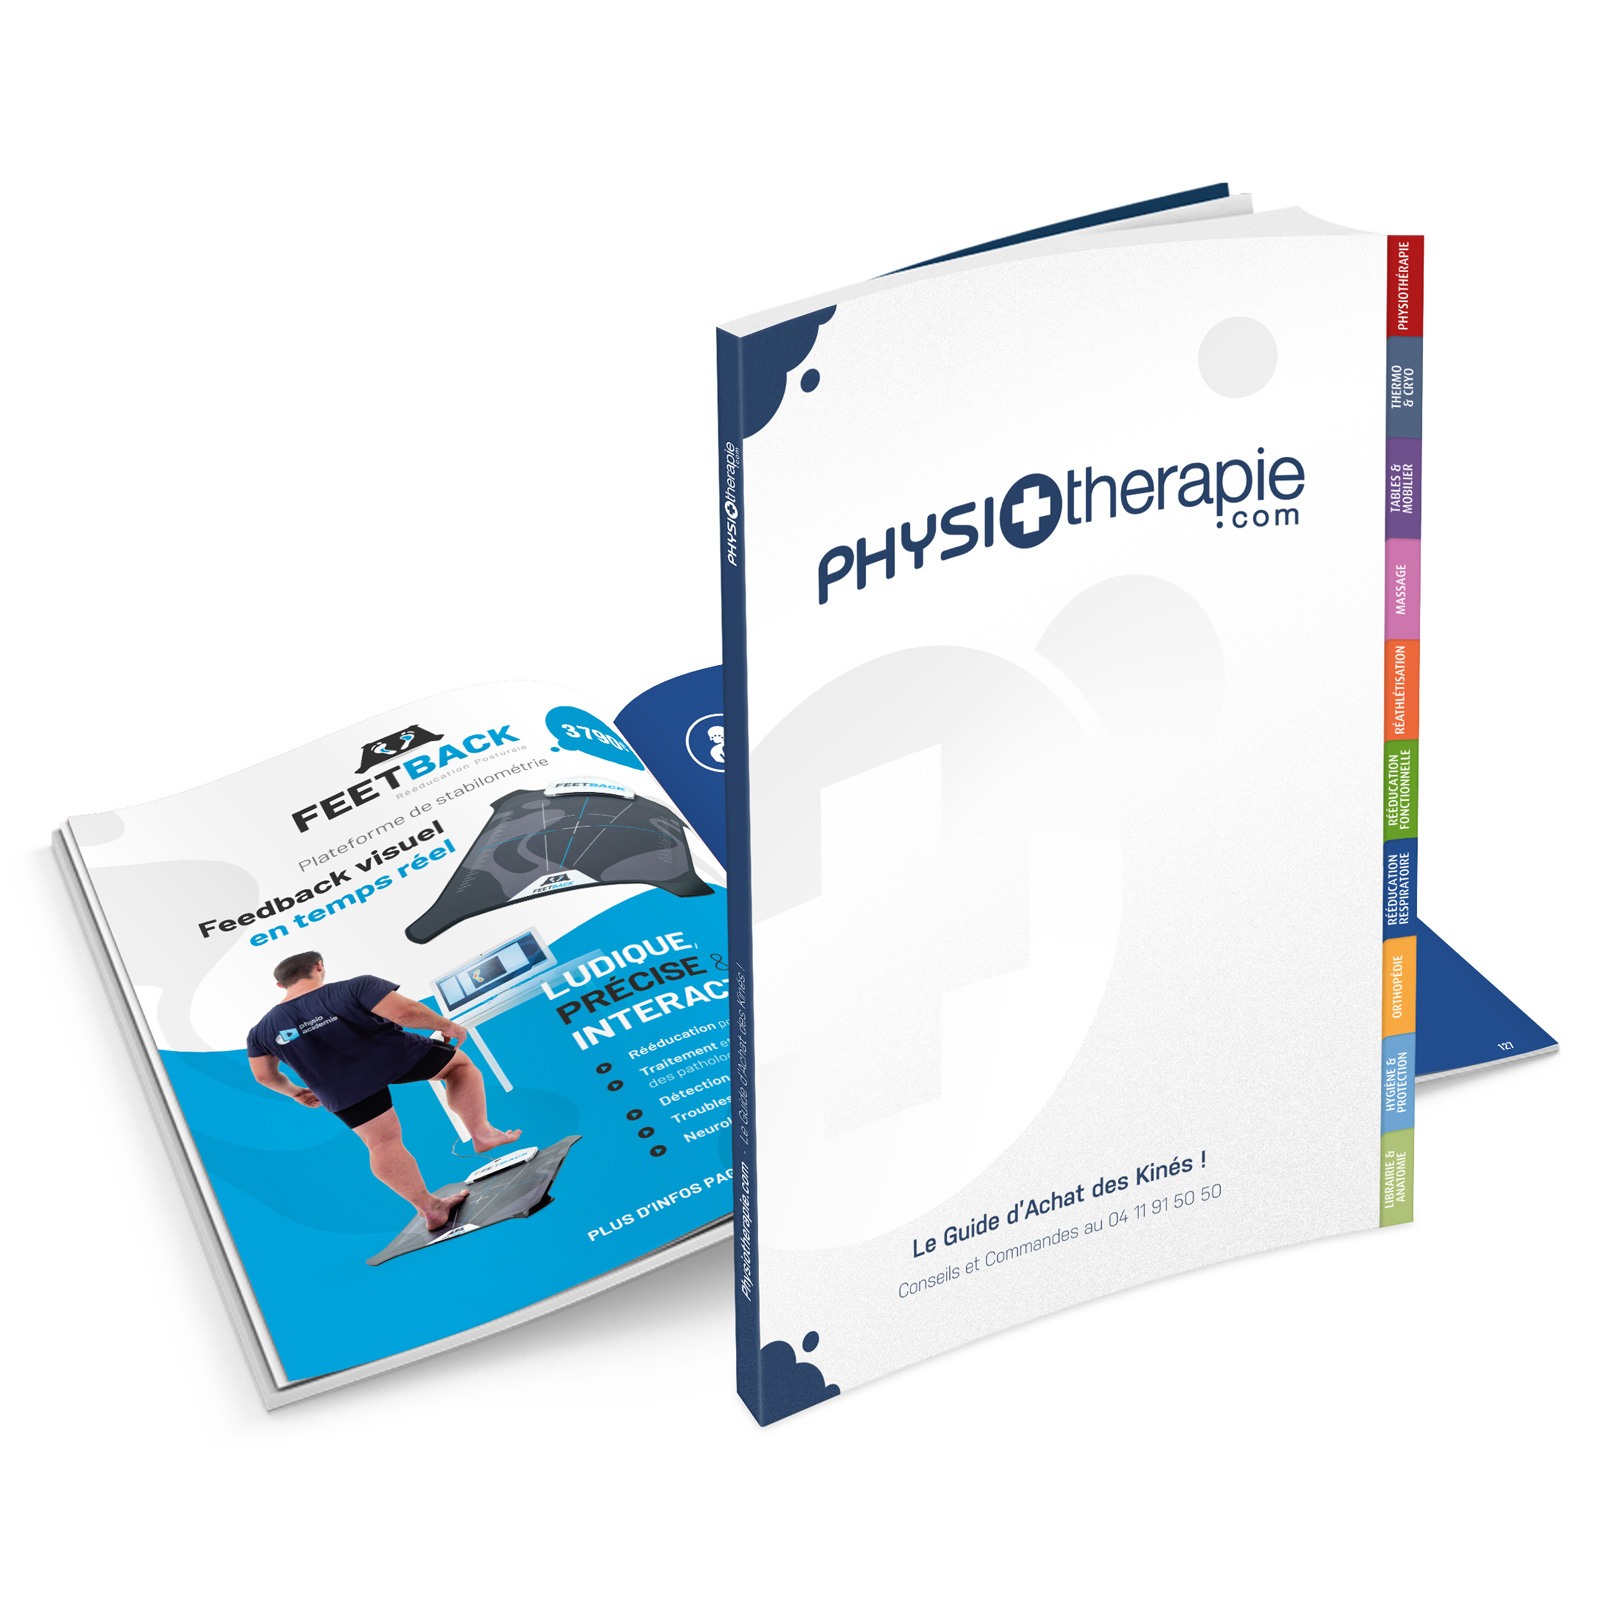 Catalogue Physiotherapie.com